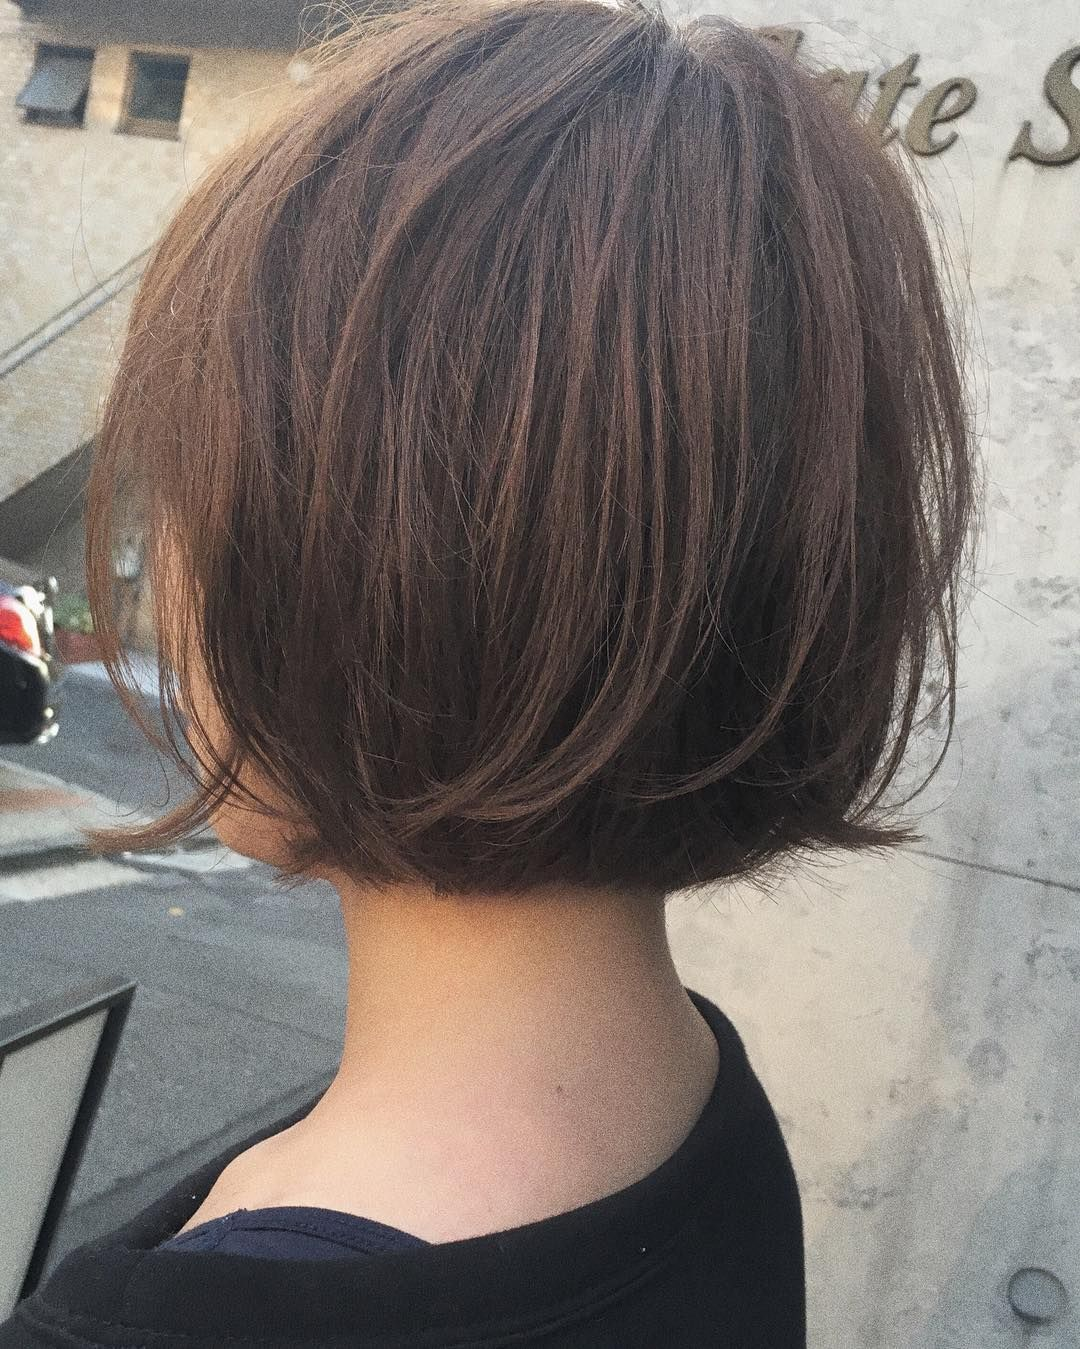 See This Instagram Photo By Nori190 284 Likes ヘアスタイル